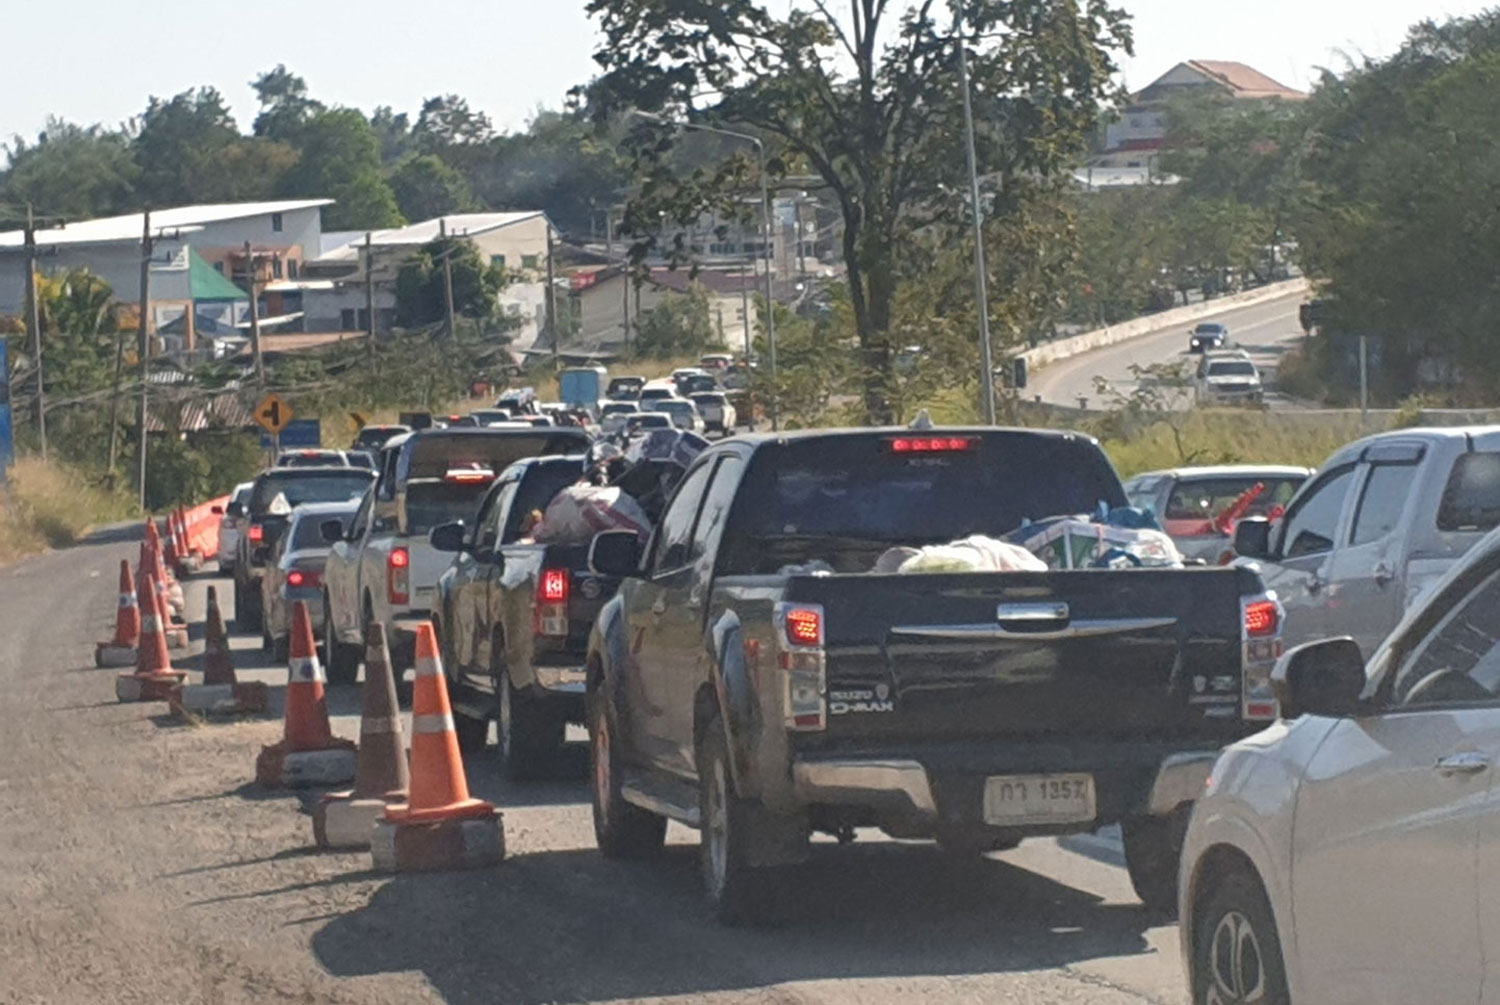 Traffic on outbound lanes heading to Bangkok in Wang Nam Khieo district of Nakhon Ratchasima moves slowly on Saturday. (Photo by Prasit Tangprasert)